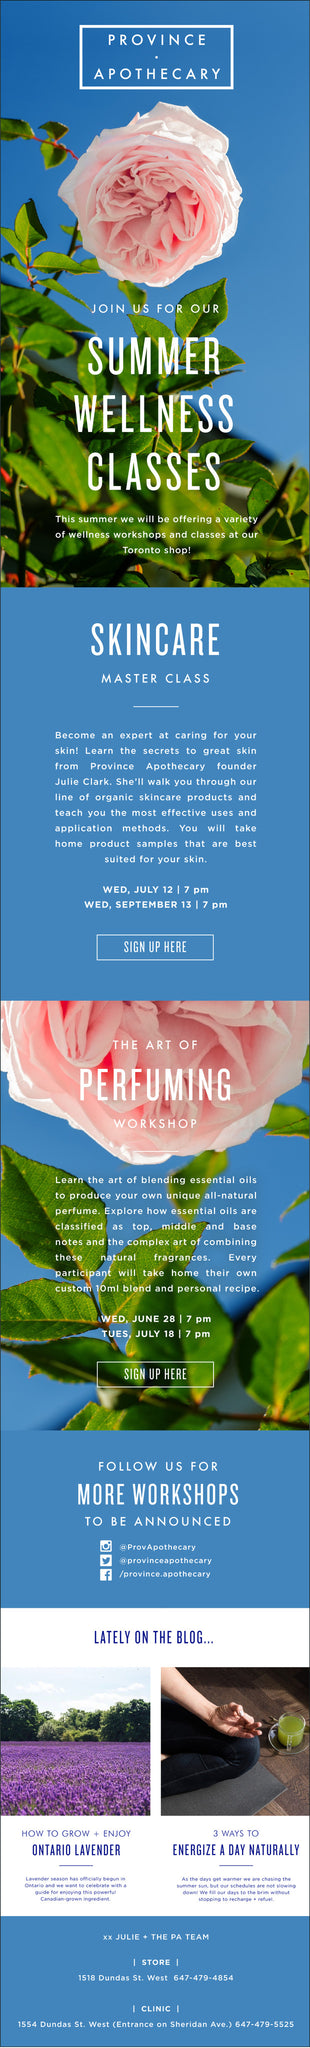 JOIN US FOR OUR SUMMER WELLNESS CLASSES